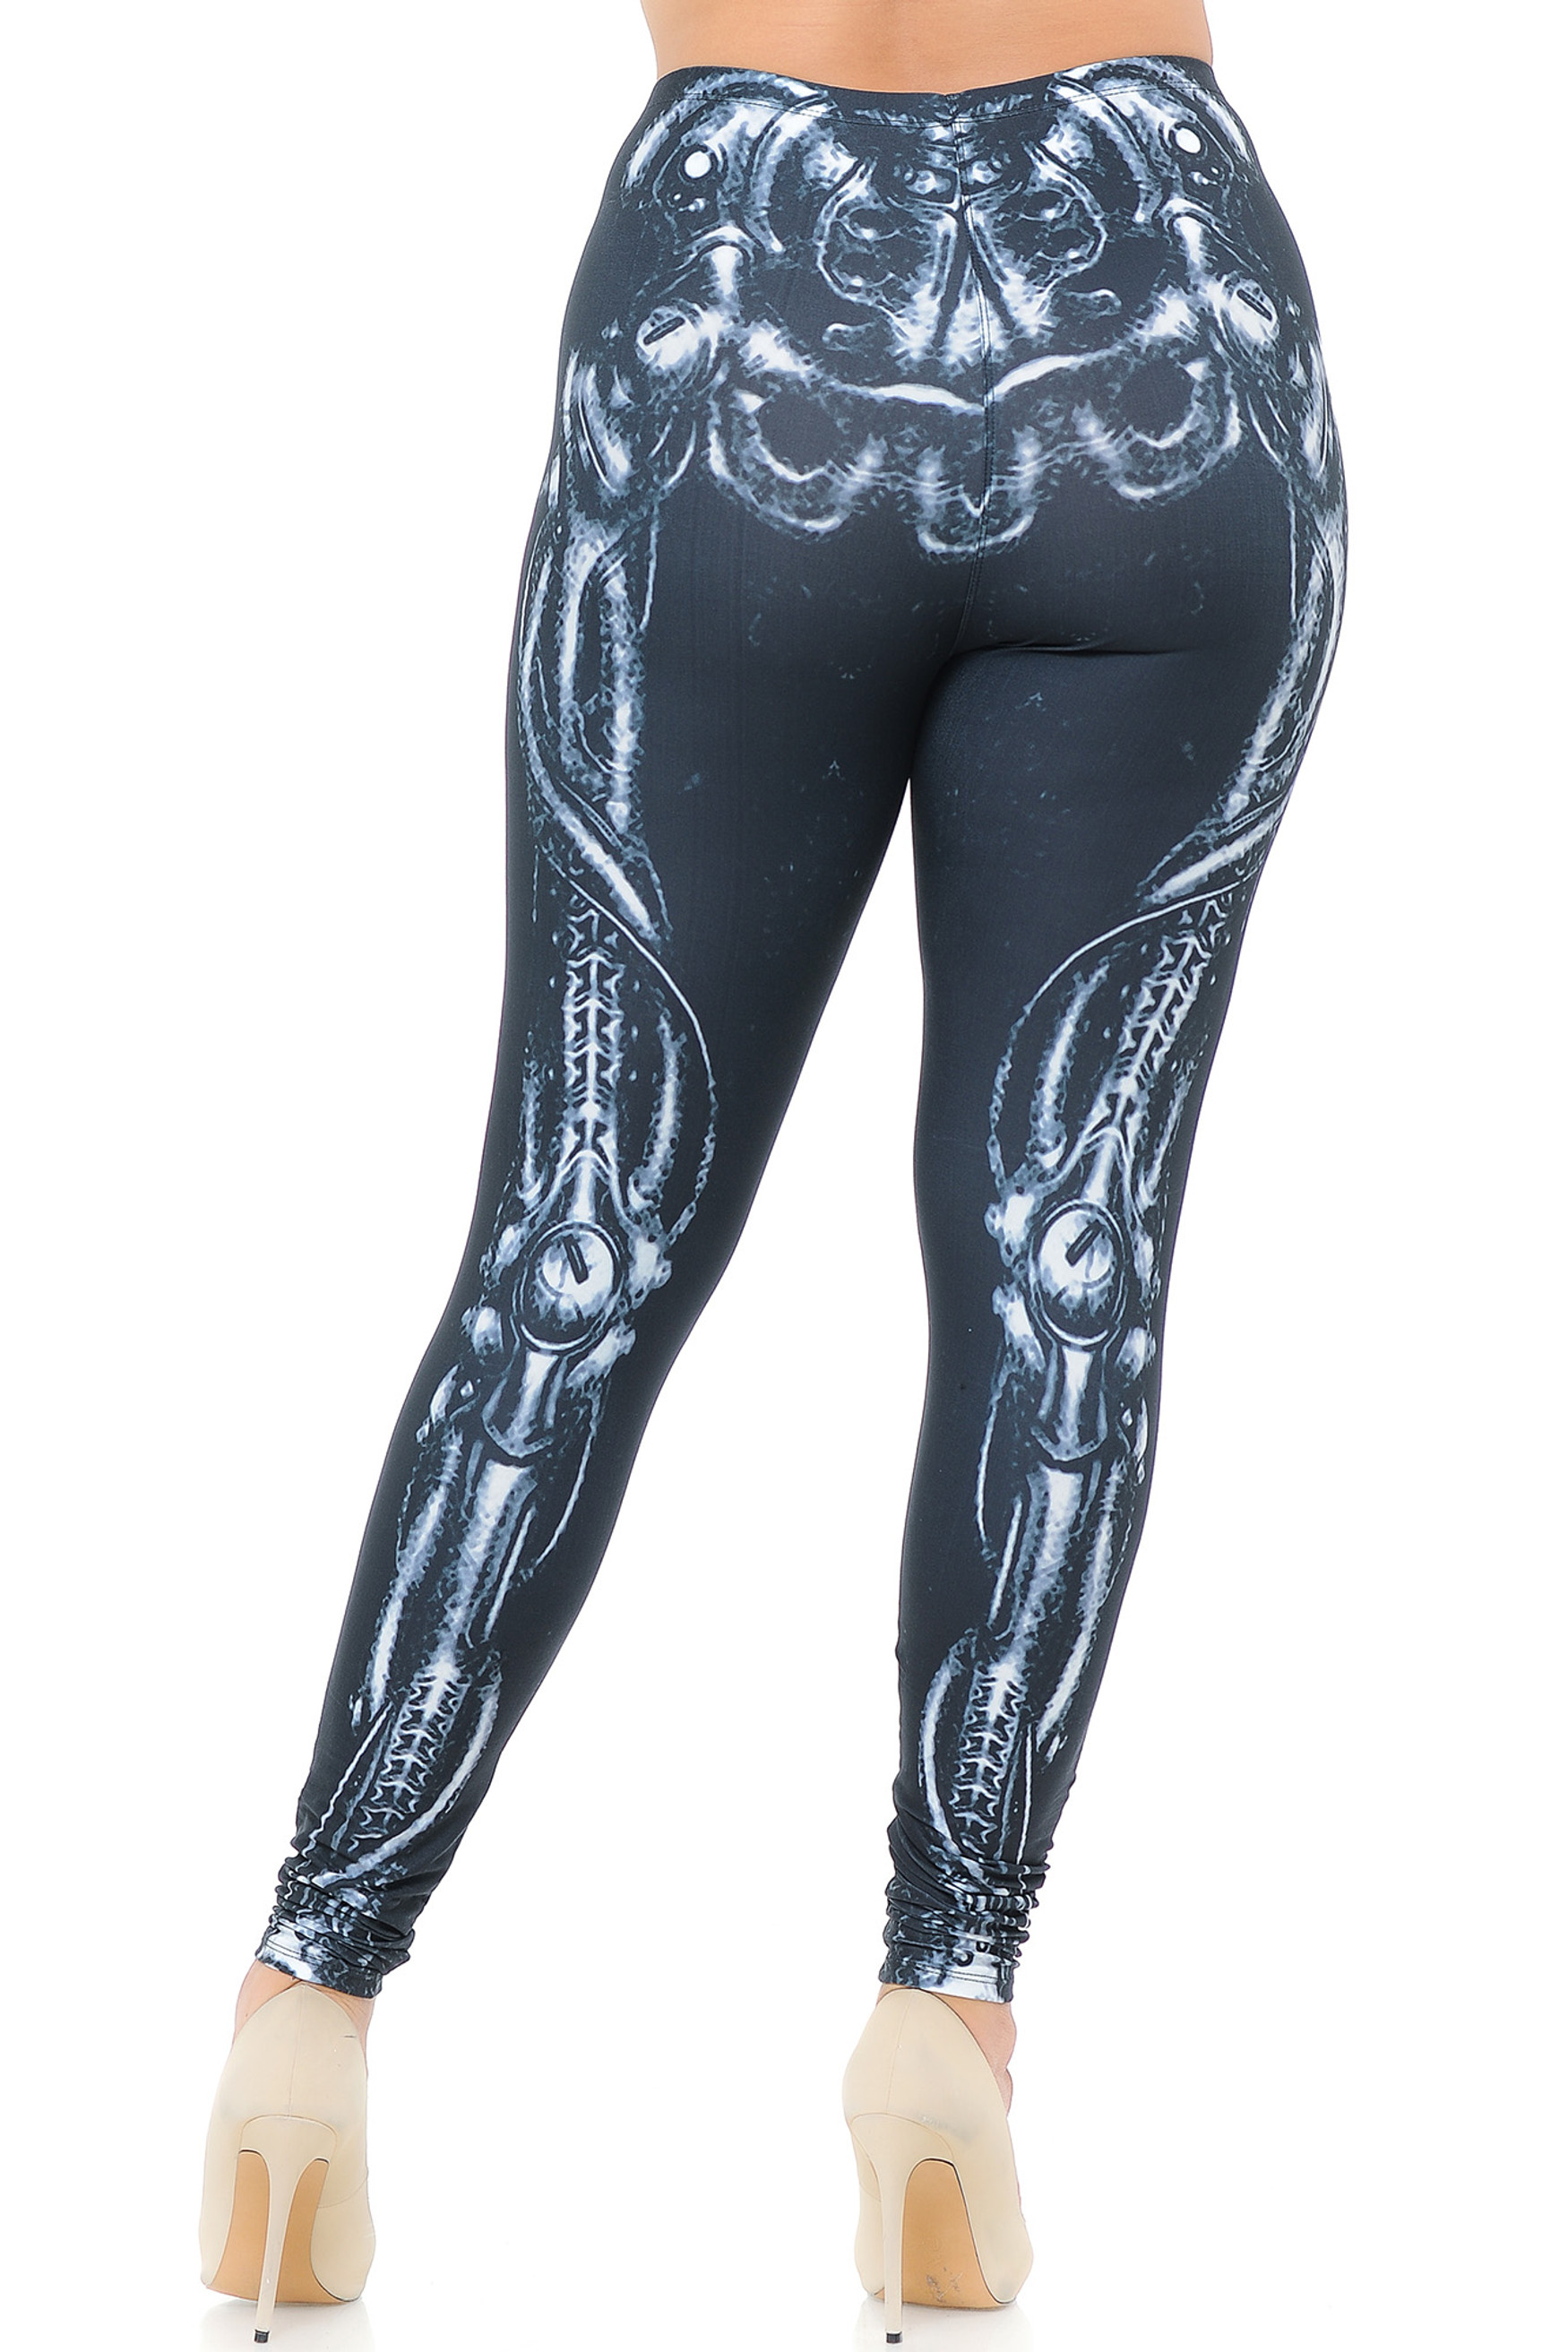 Creamy Soft Black Bio Mechanical Skeleton Extra Plus Size Leggings (Steam Punk) - 3X-5X - USA Fashion™